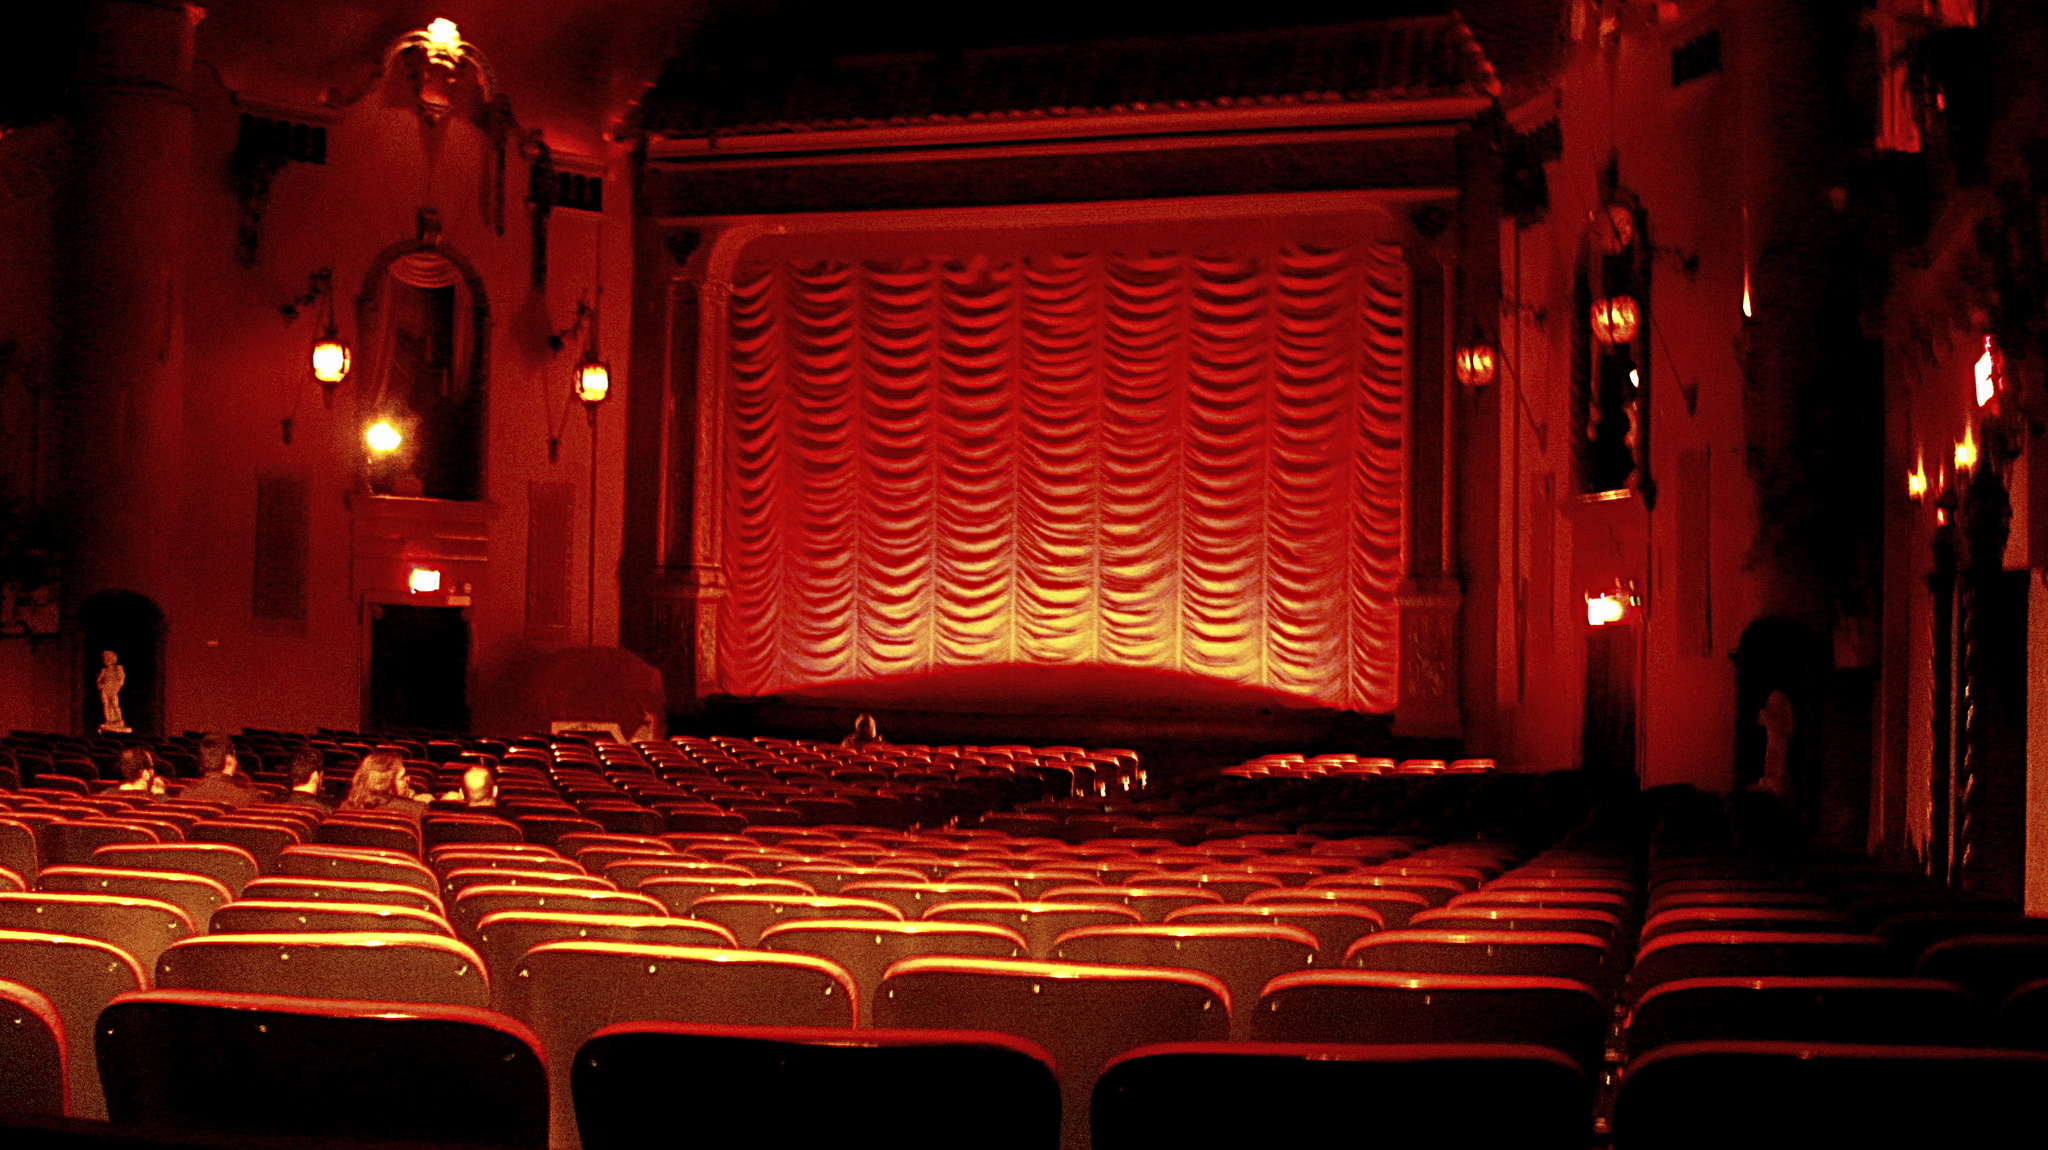 Chicago Event 70mm Film Festival At The Music Box Theatre